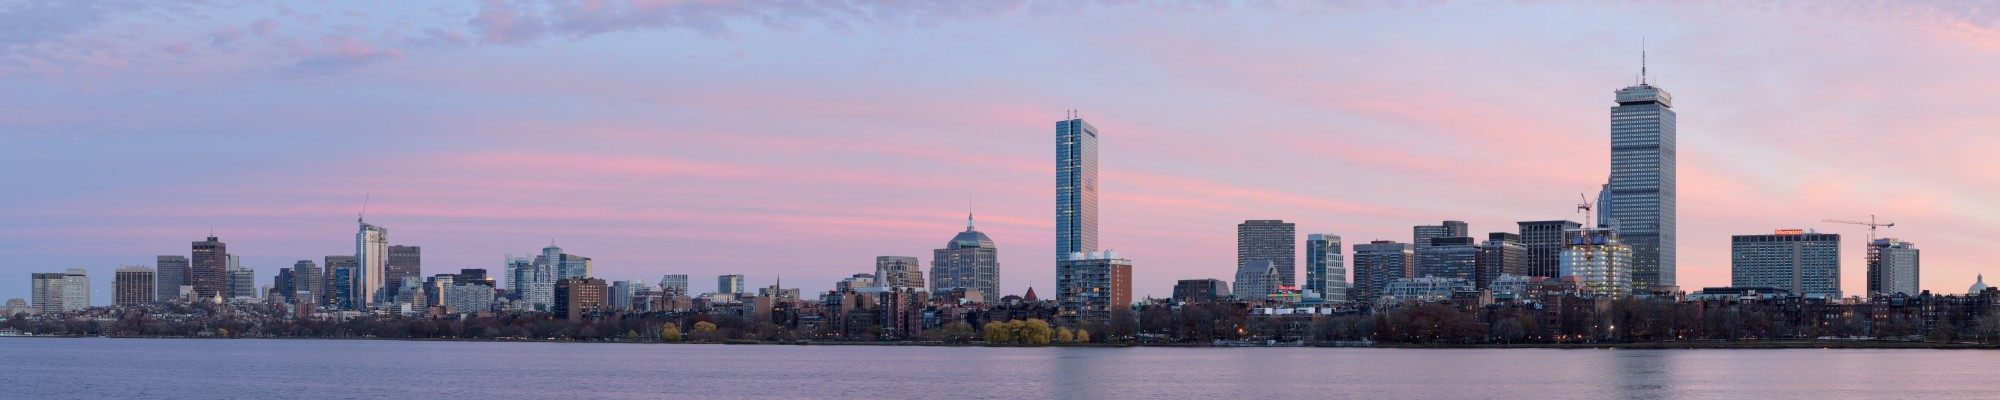 Boston skyline from Cambridge November 2015 panorama 1